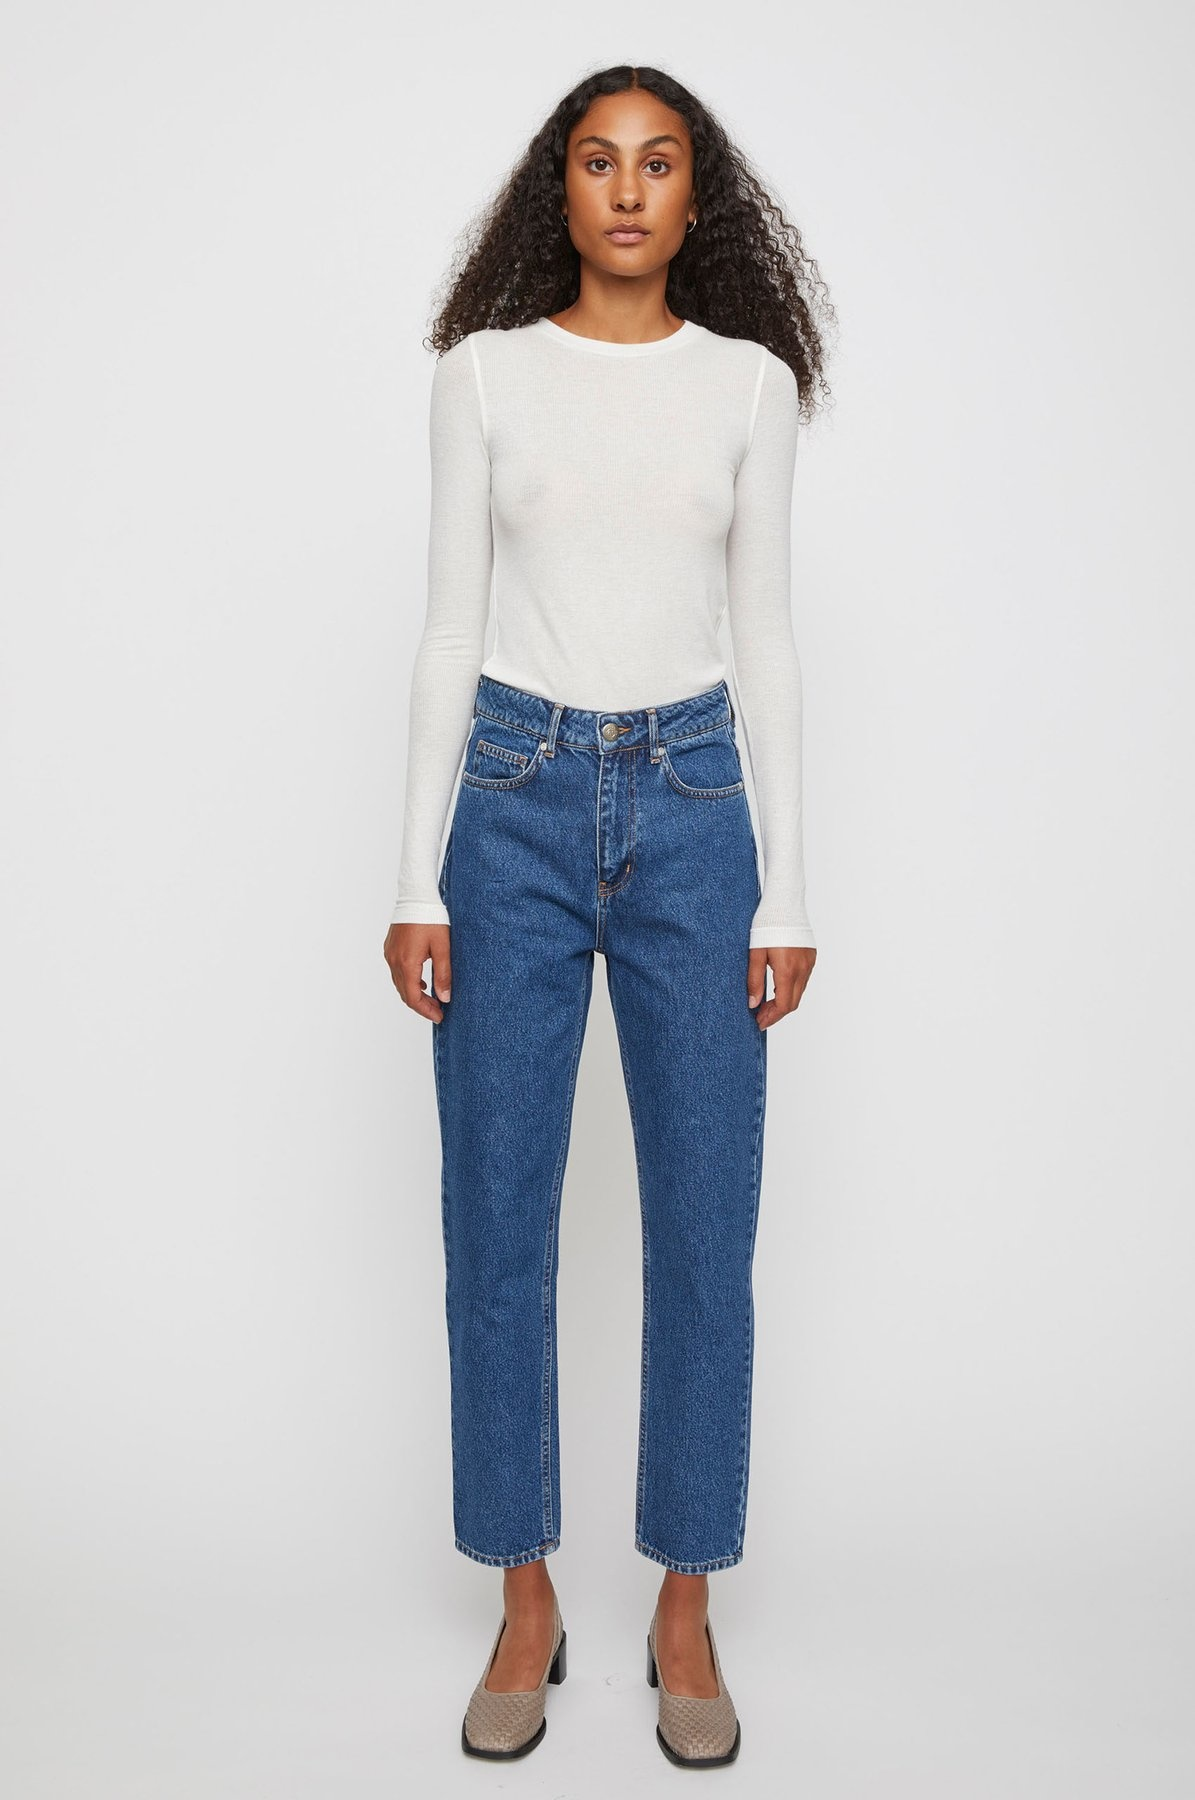 JUST FEMALE jean stormy 0102-2